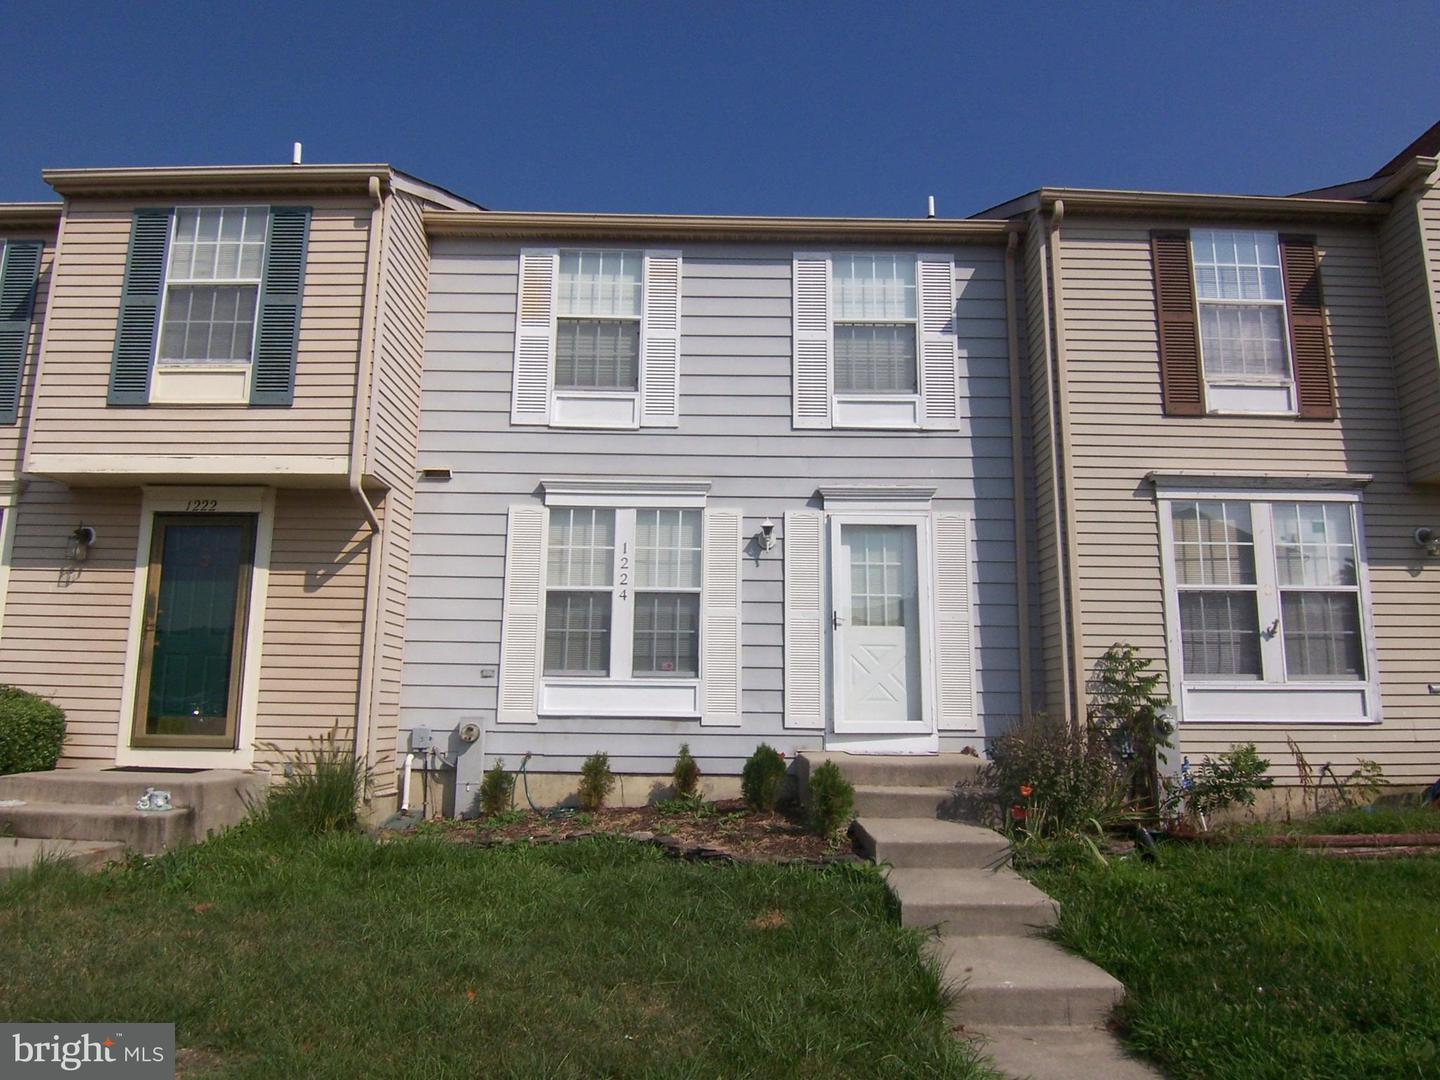 Other Residential for Rent at 1224 Valley Leaf Ct Edgewood, Maryland 21040 United States